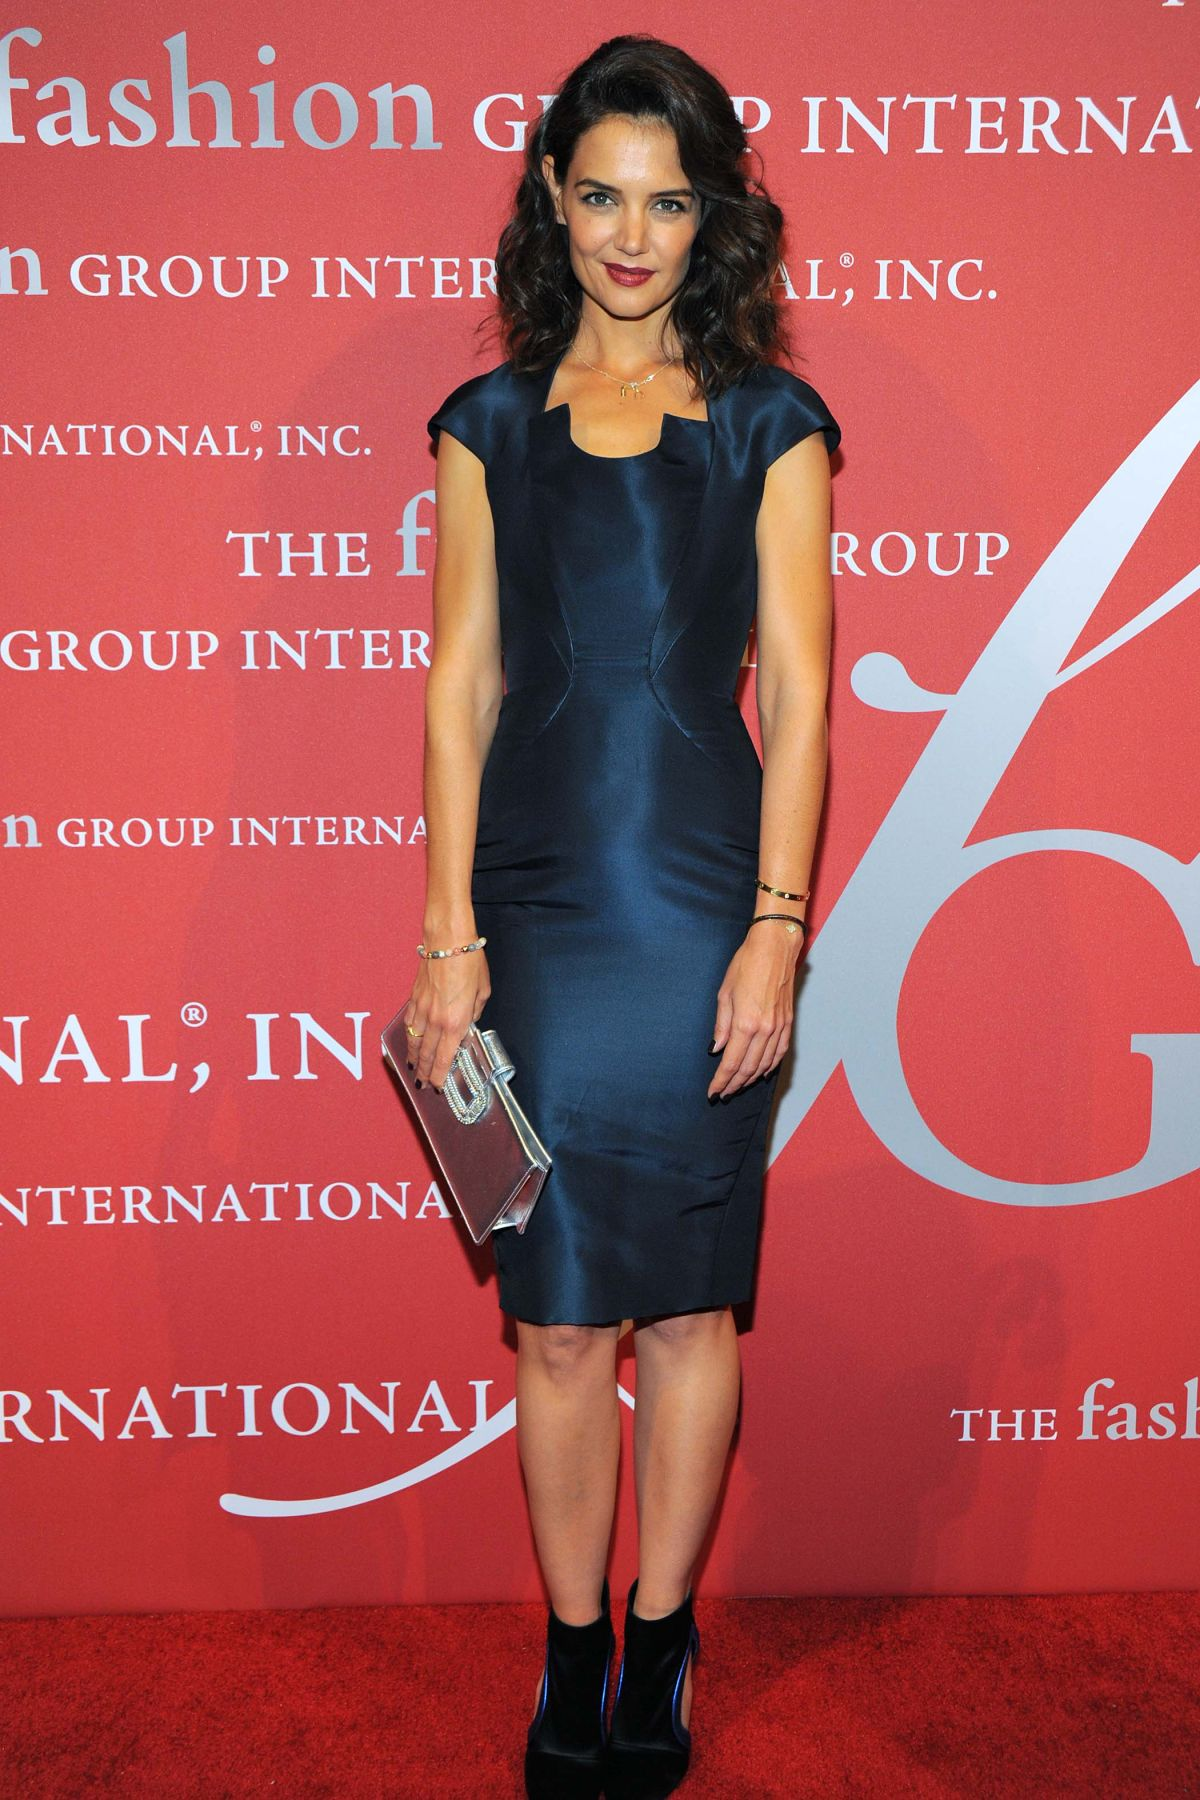 katie-holmes-at-2015-fashion-group-international-night-of-stars-gala-in-new-york-10-22-2015_13